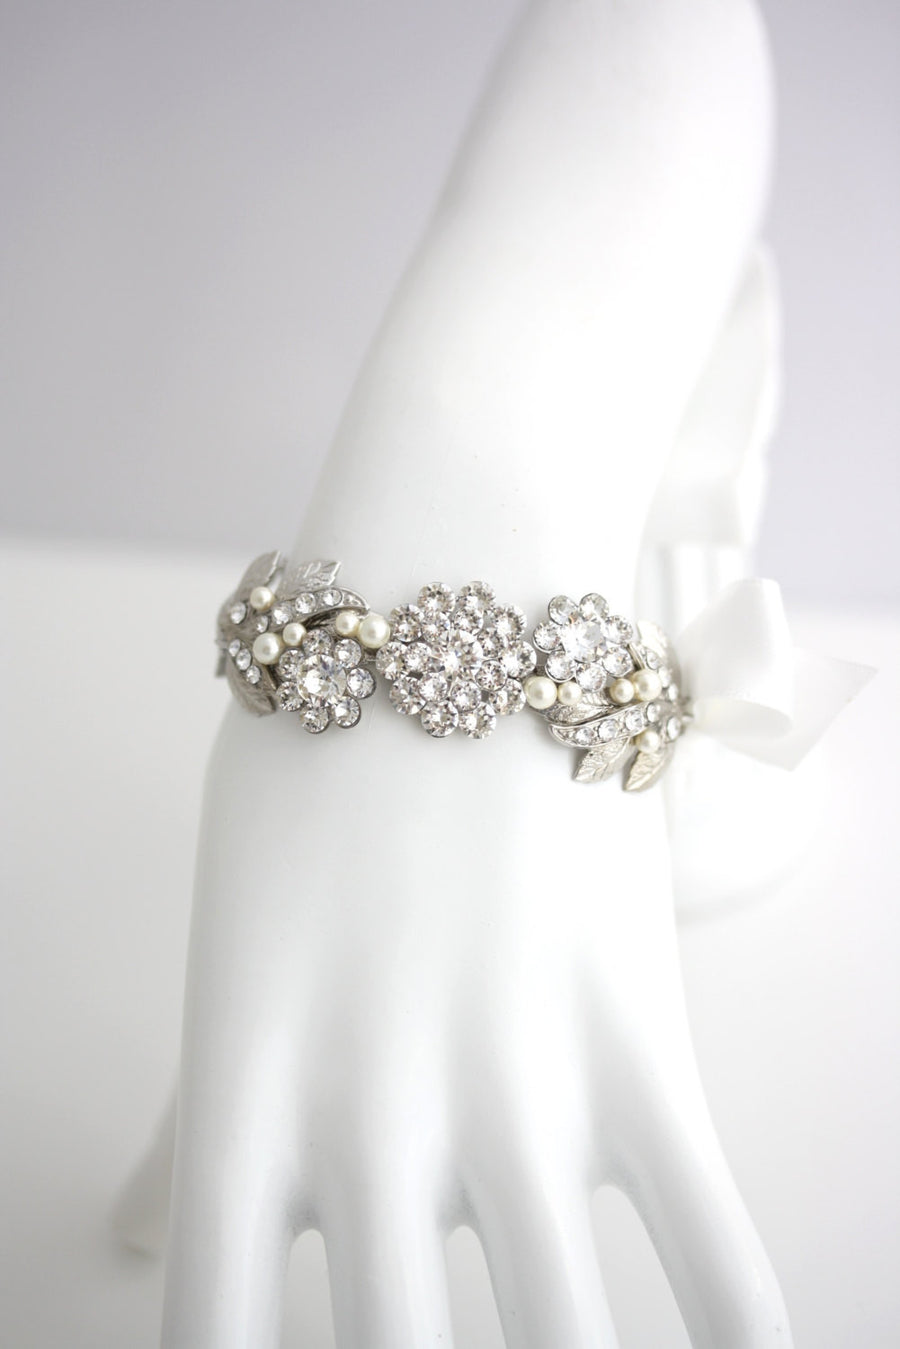 Mier Silver Ribbon Wedding Bracelet - Lulu Splendor